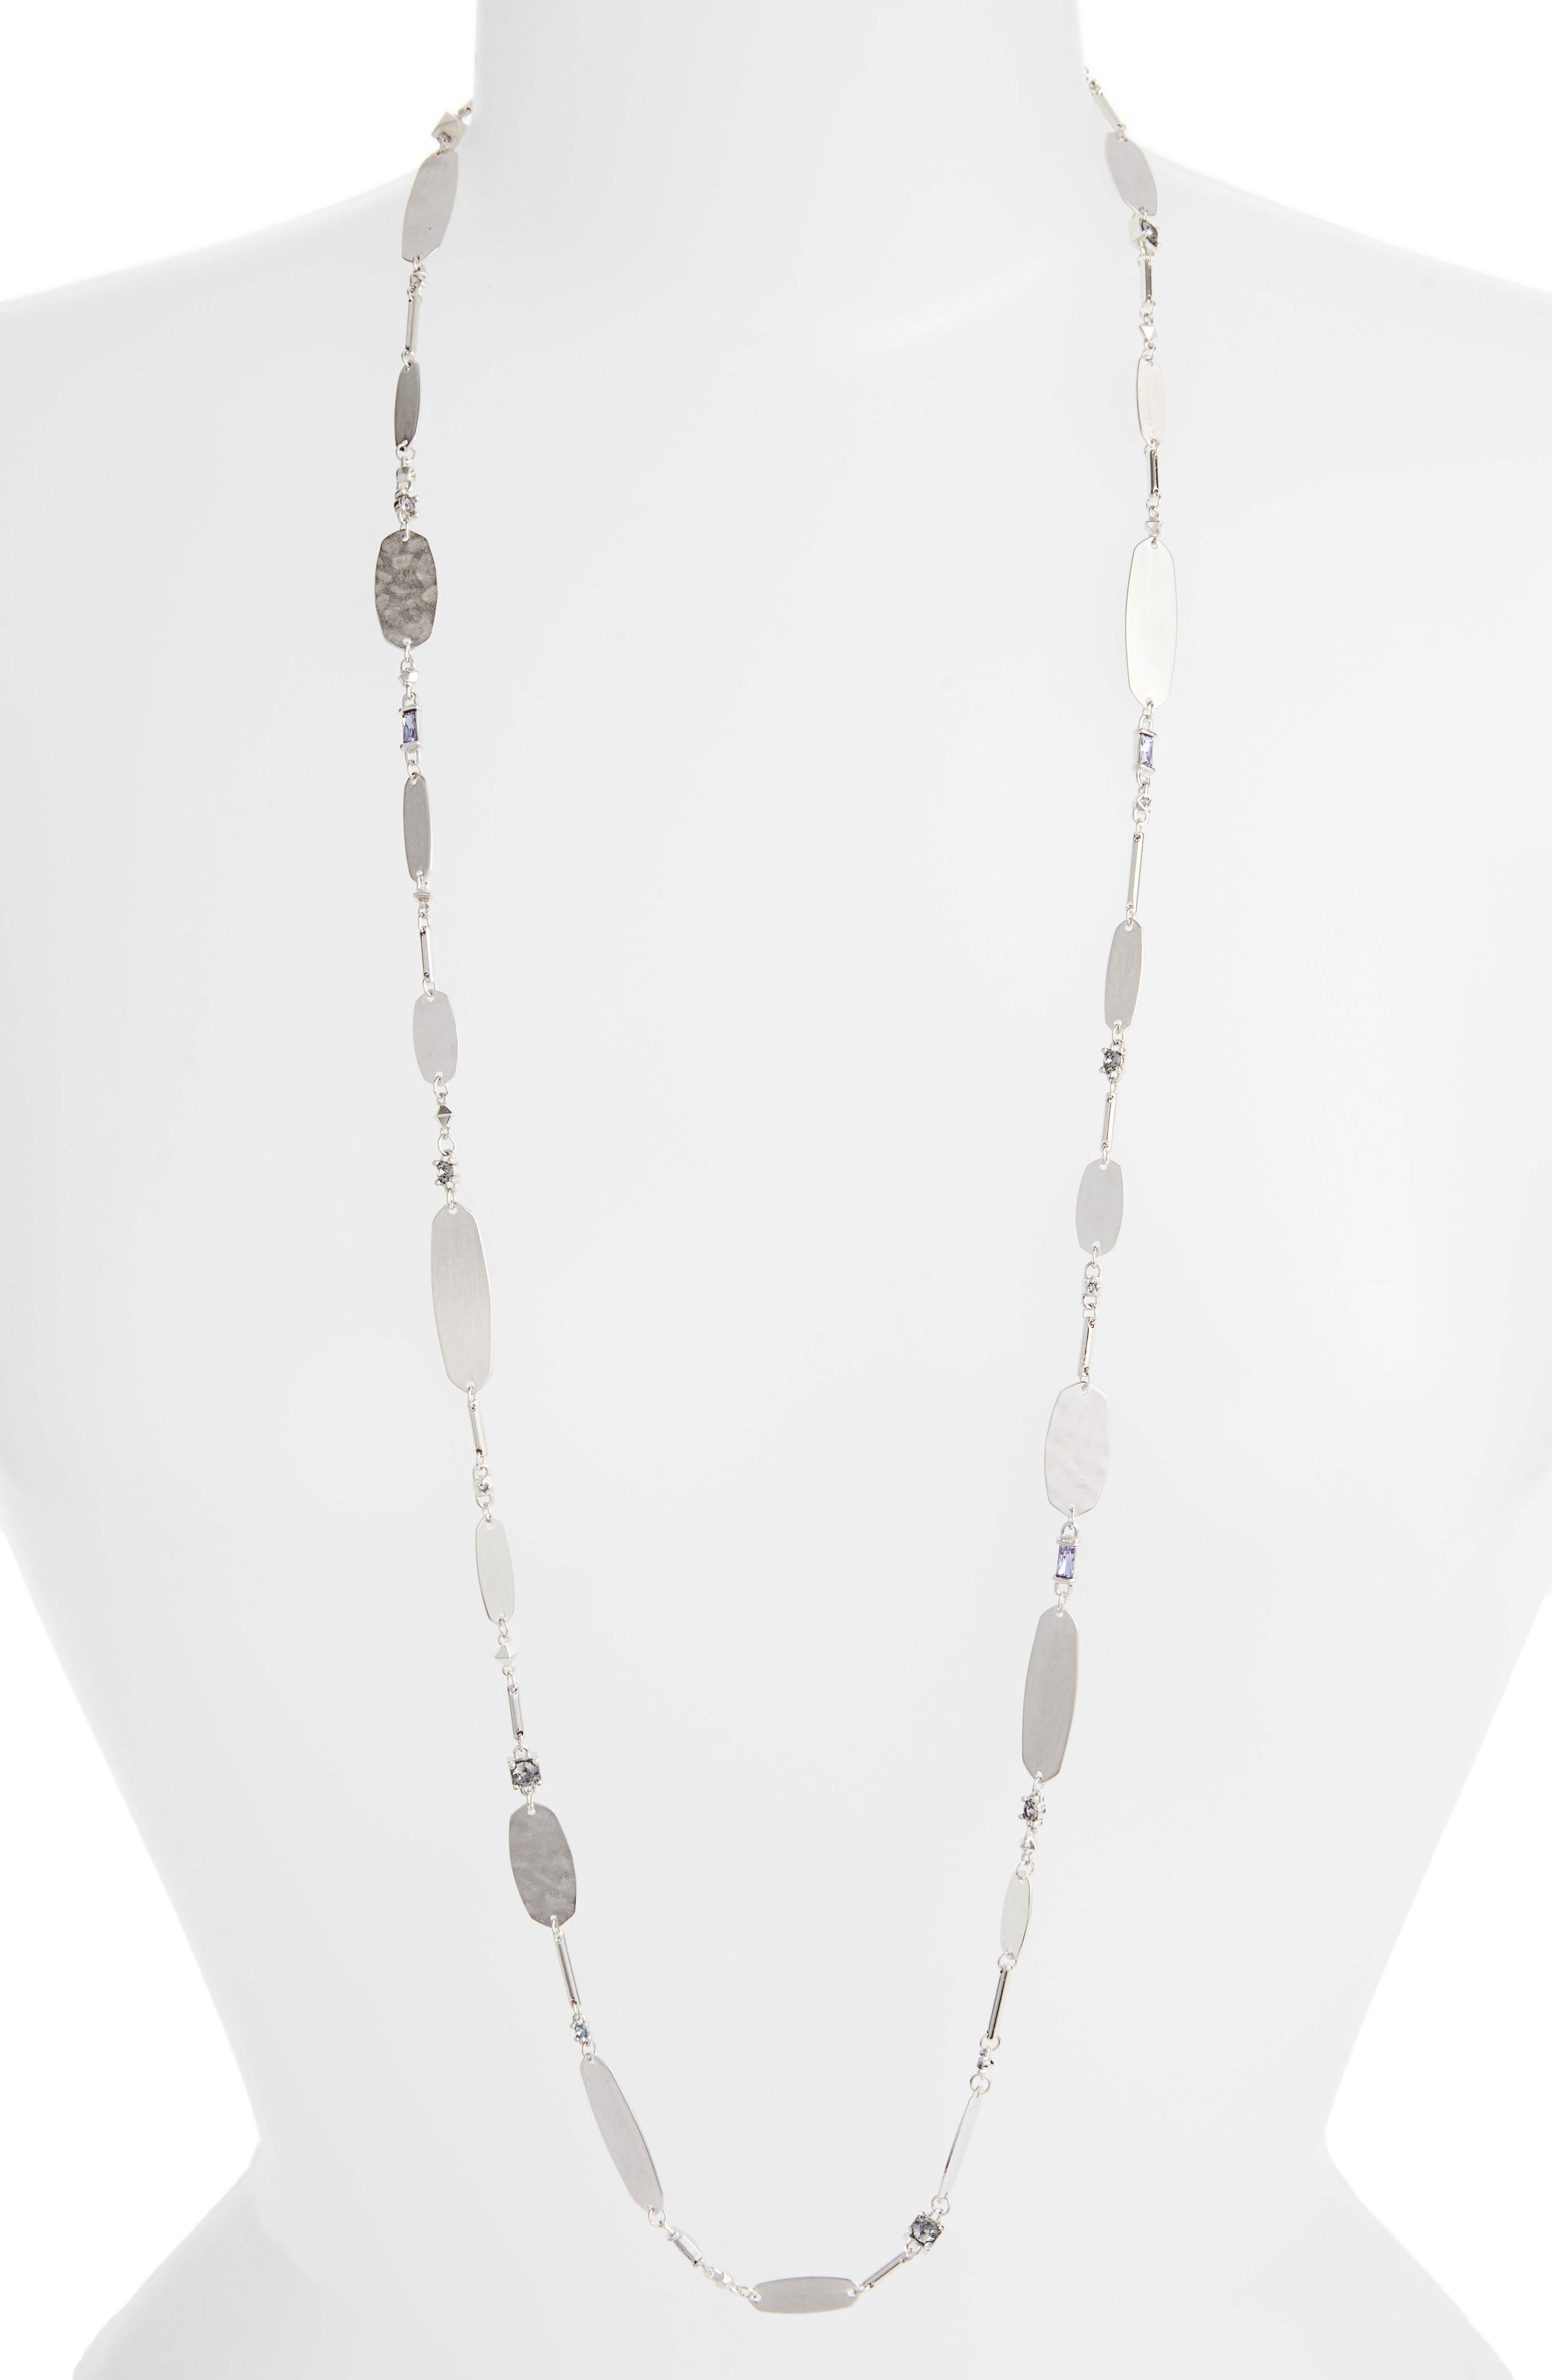 KENDRA SCOTT Claret Station Necklace, 37.5 in Lilac Mix/ Silver